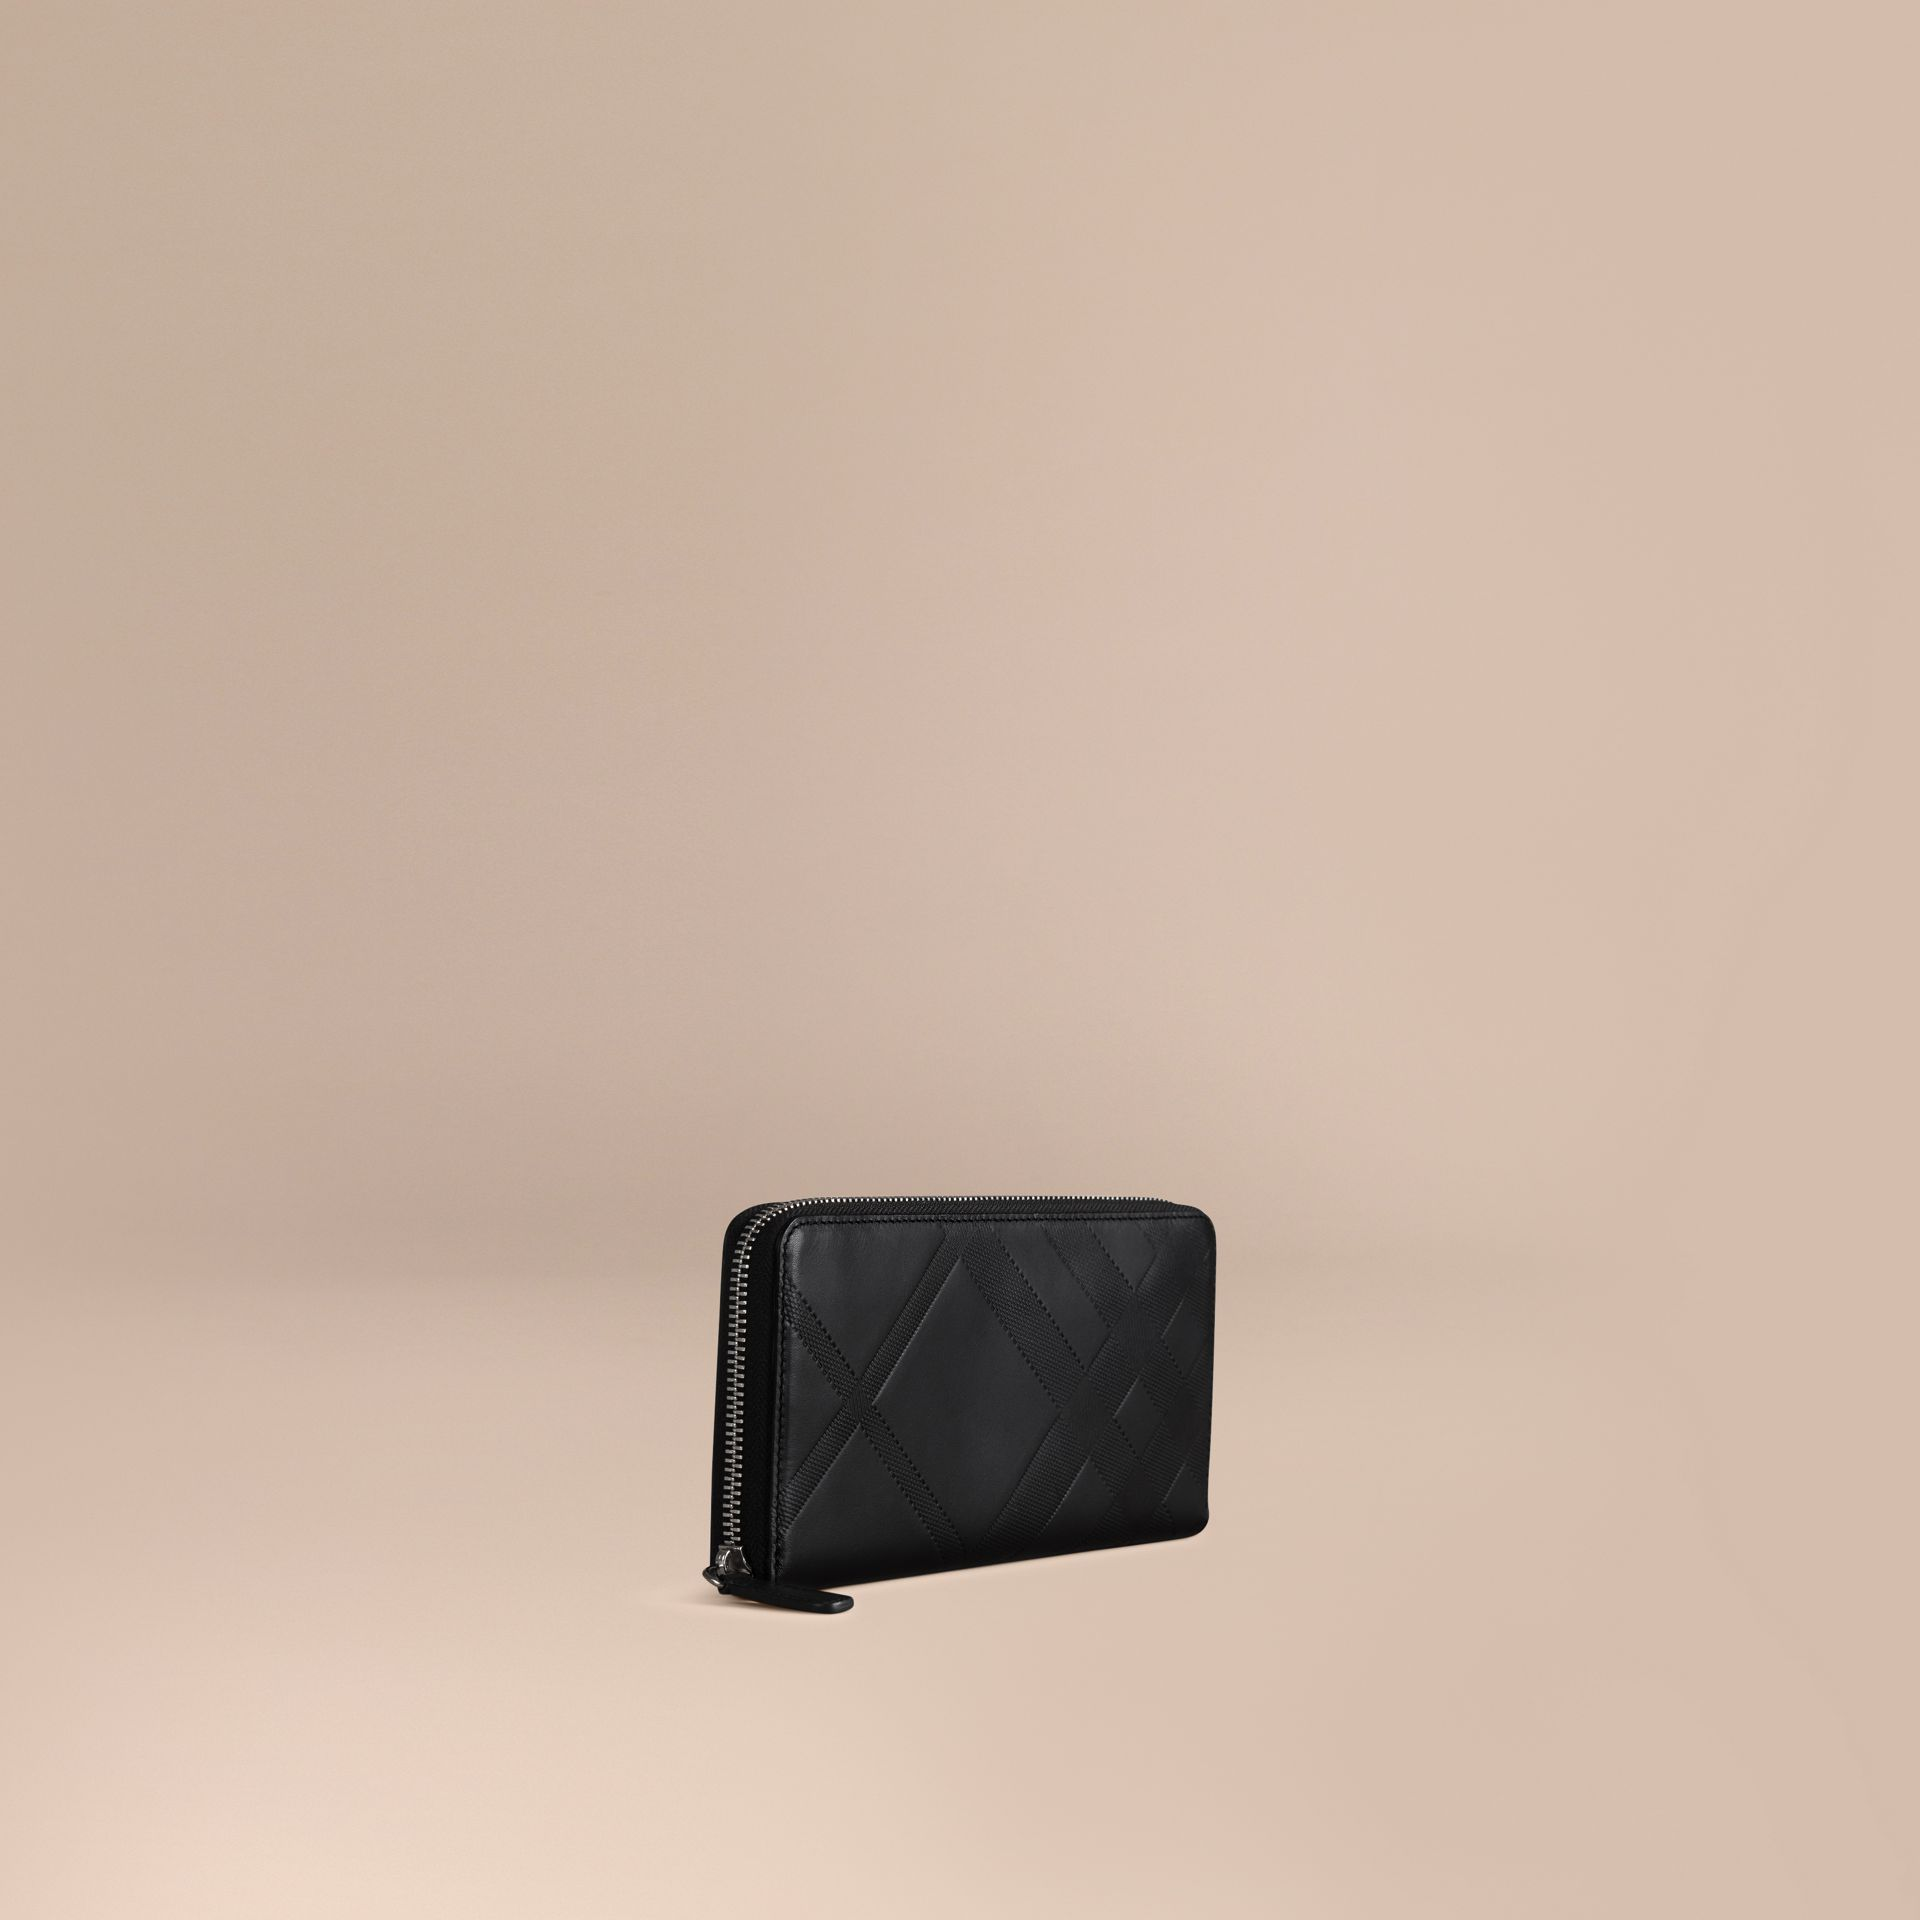 Black Check-embossed Leather Ziparound Wallet Black - gallery image 1